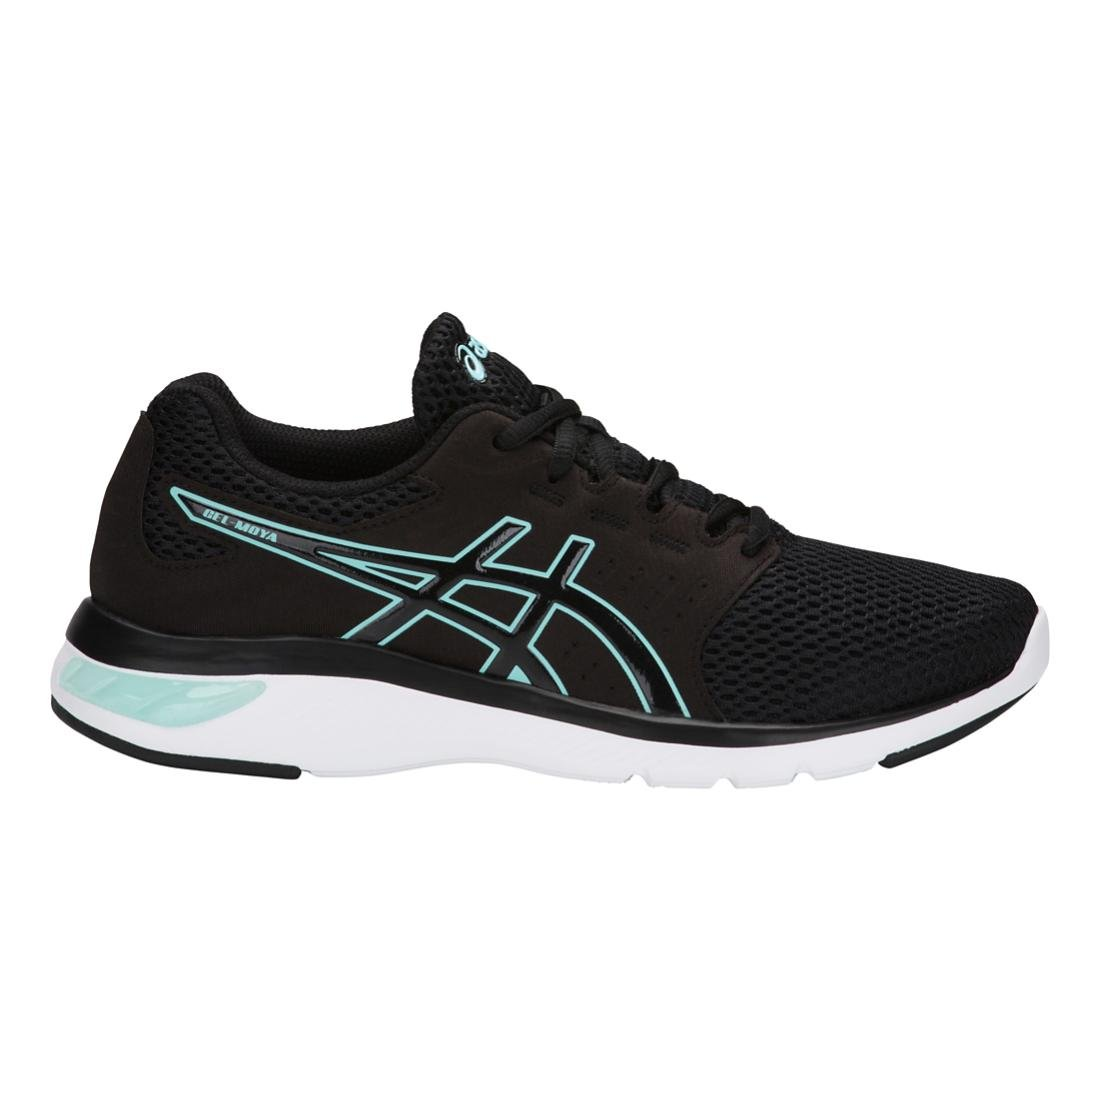 ASICS Women's Gel-Moya Ankle-High Running Shoe B077H2629Z 5 B(M) US|Black/Blue